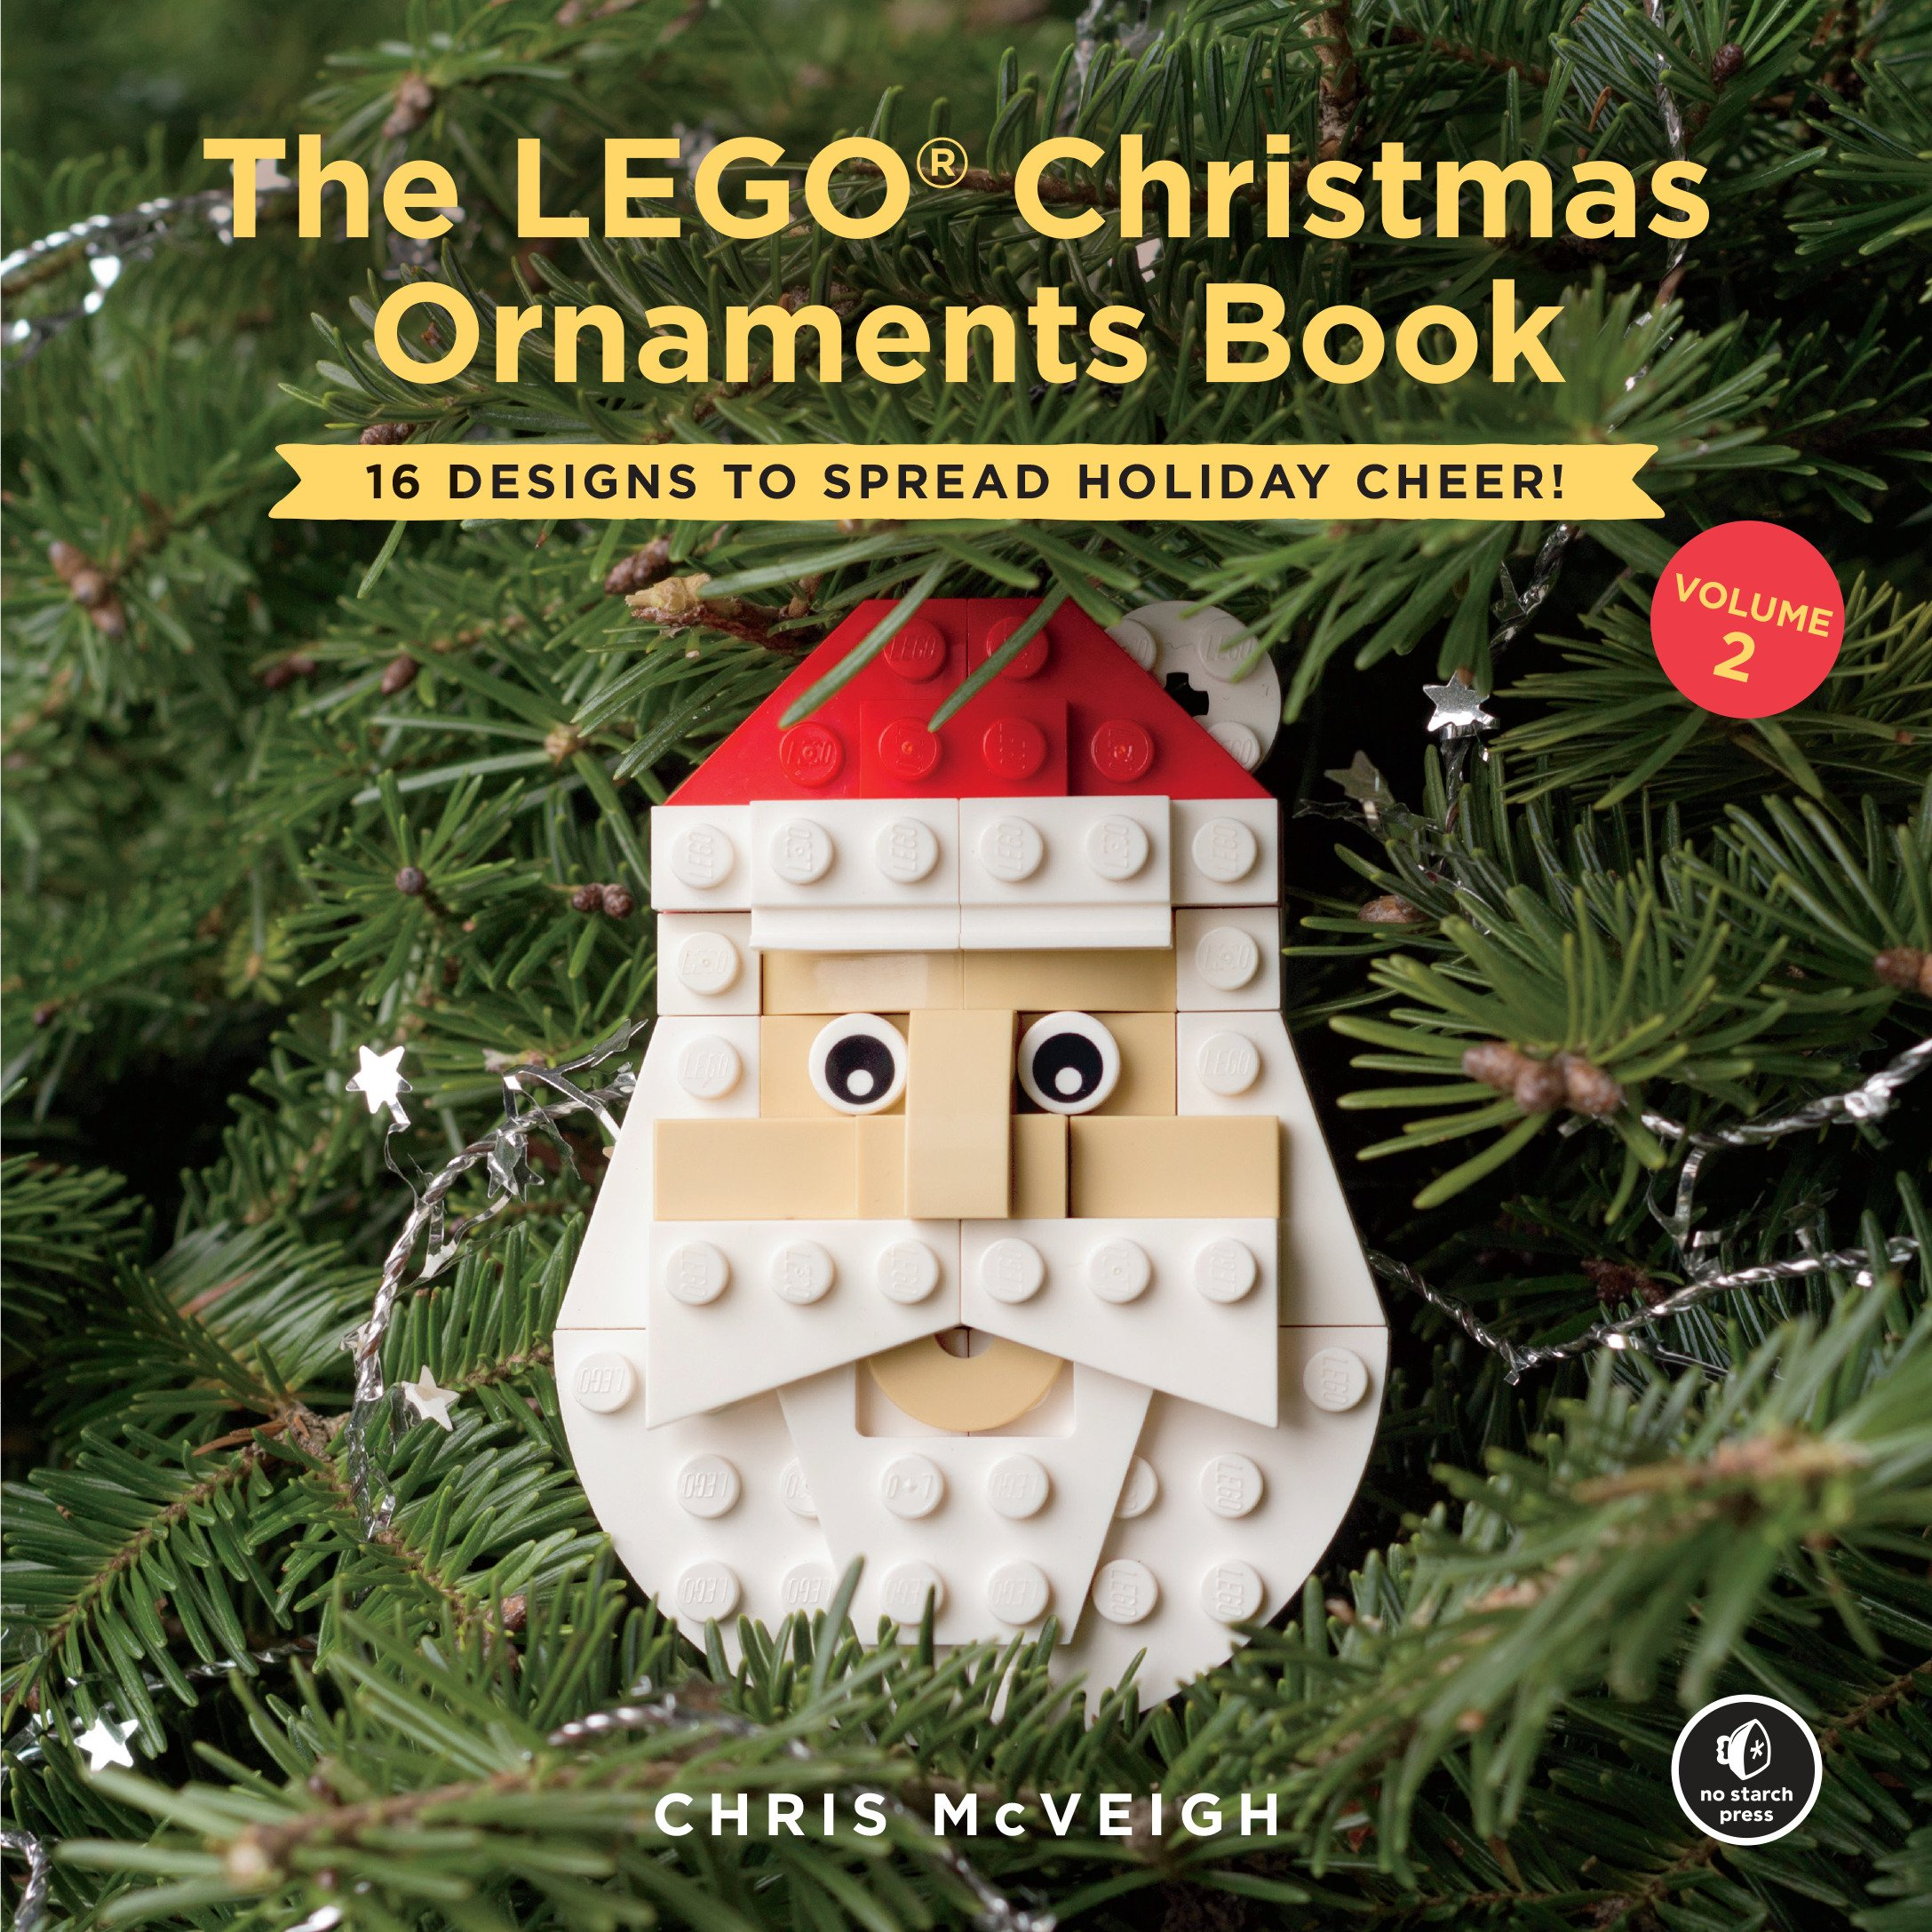 LEGO Christmas Ornaments Book 2 The Amazon Chris McVeigh